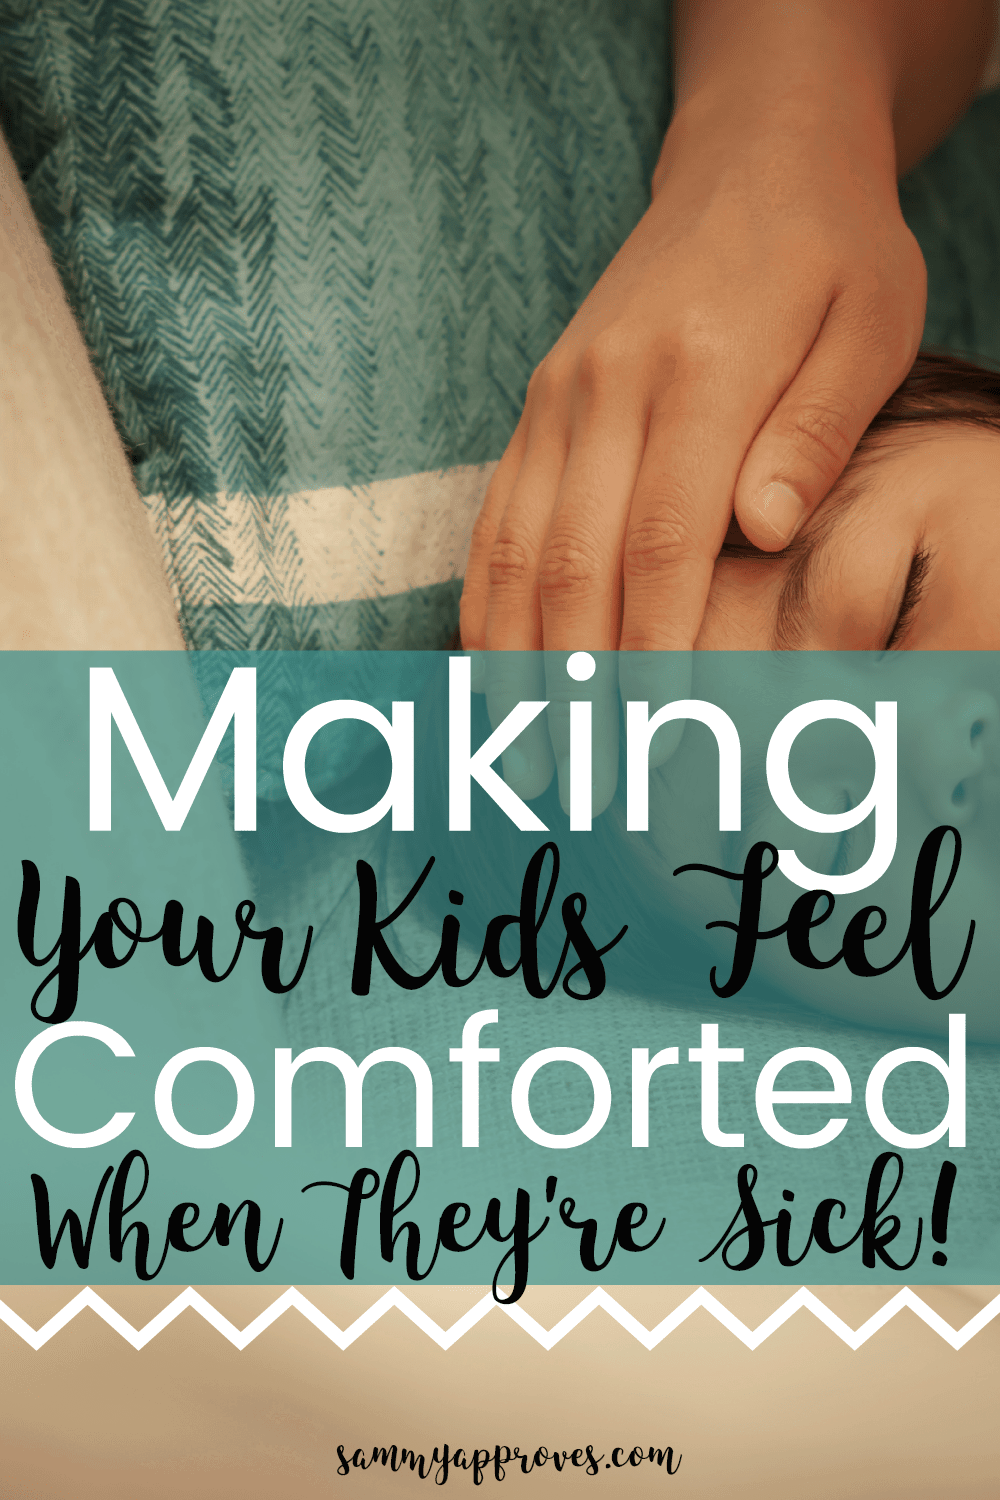 Making Your Kids Feel Comforted When They're Sick